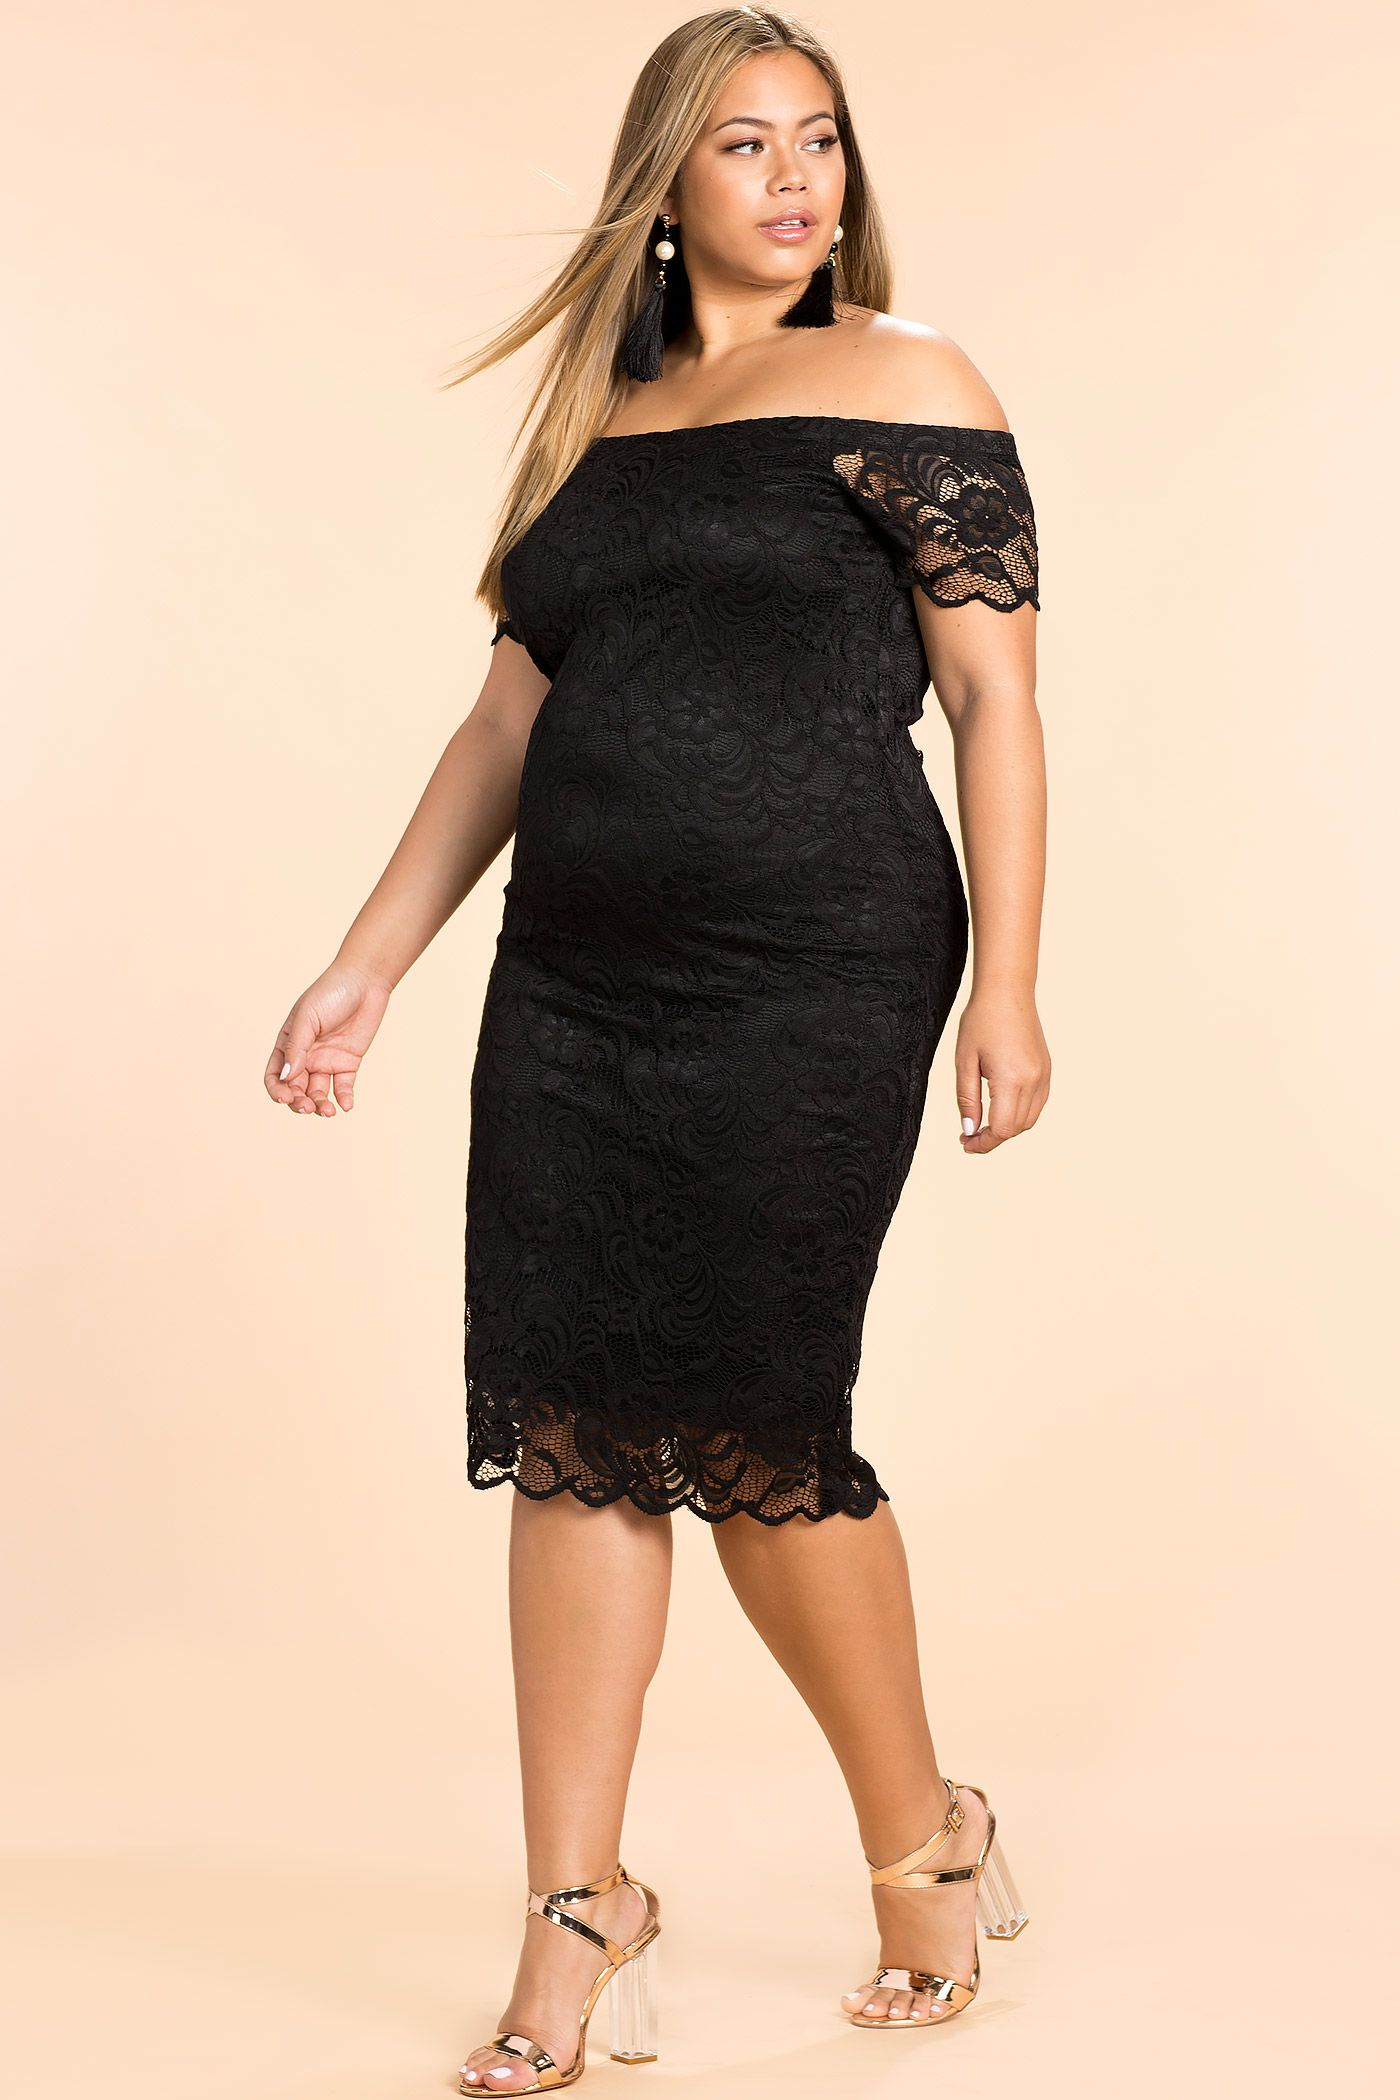 afae9be92d9 Women s Plus Size Bodycon Dresses